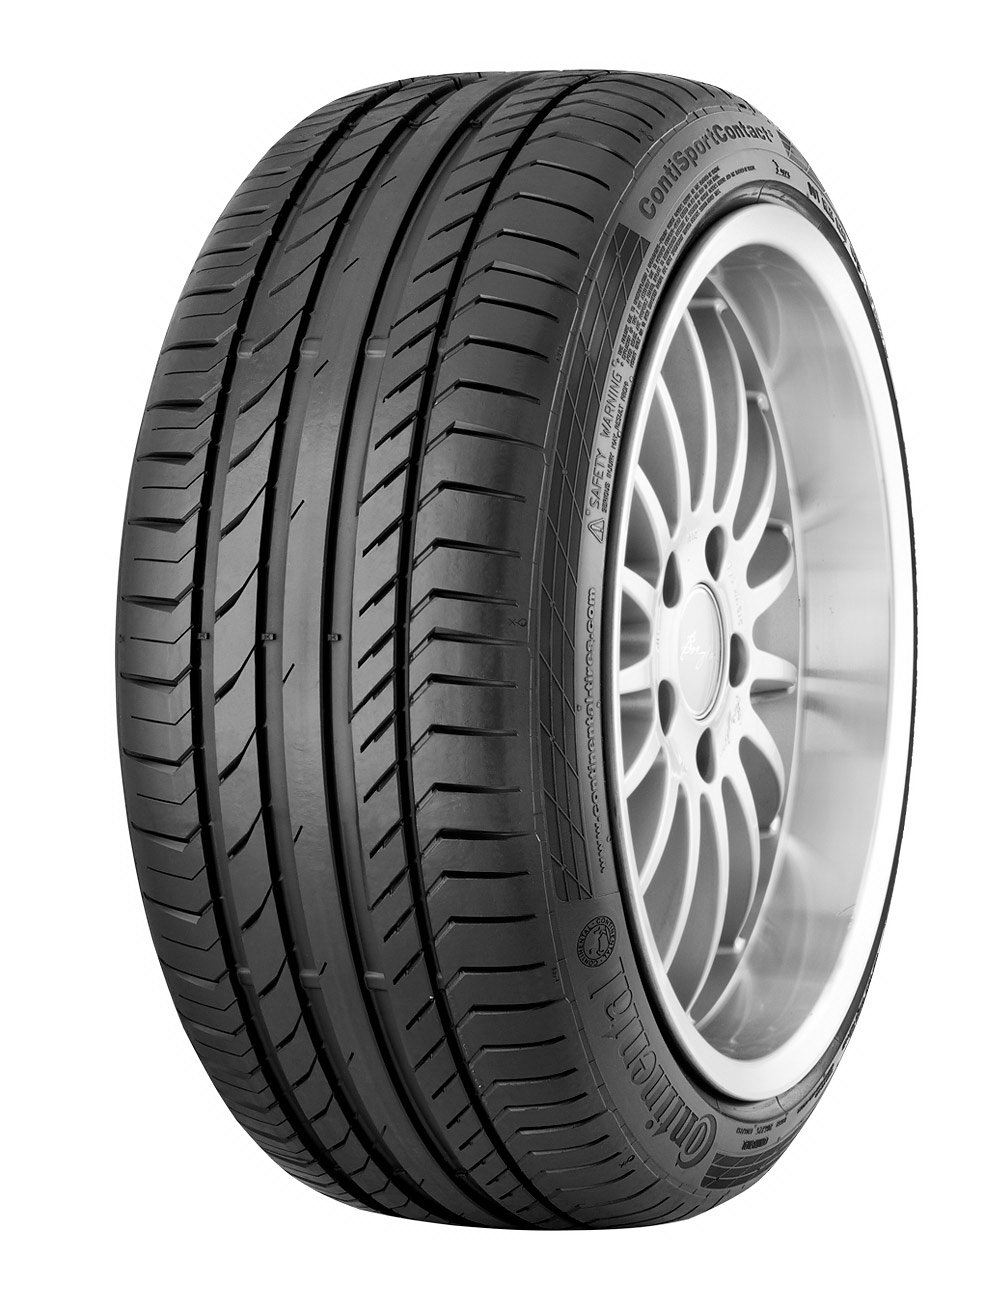 Anvelope vara CONTINENTAL SPORT CONTACT 5 SUV 265/60 R18 110V